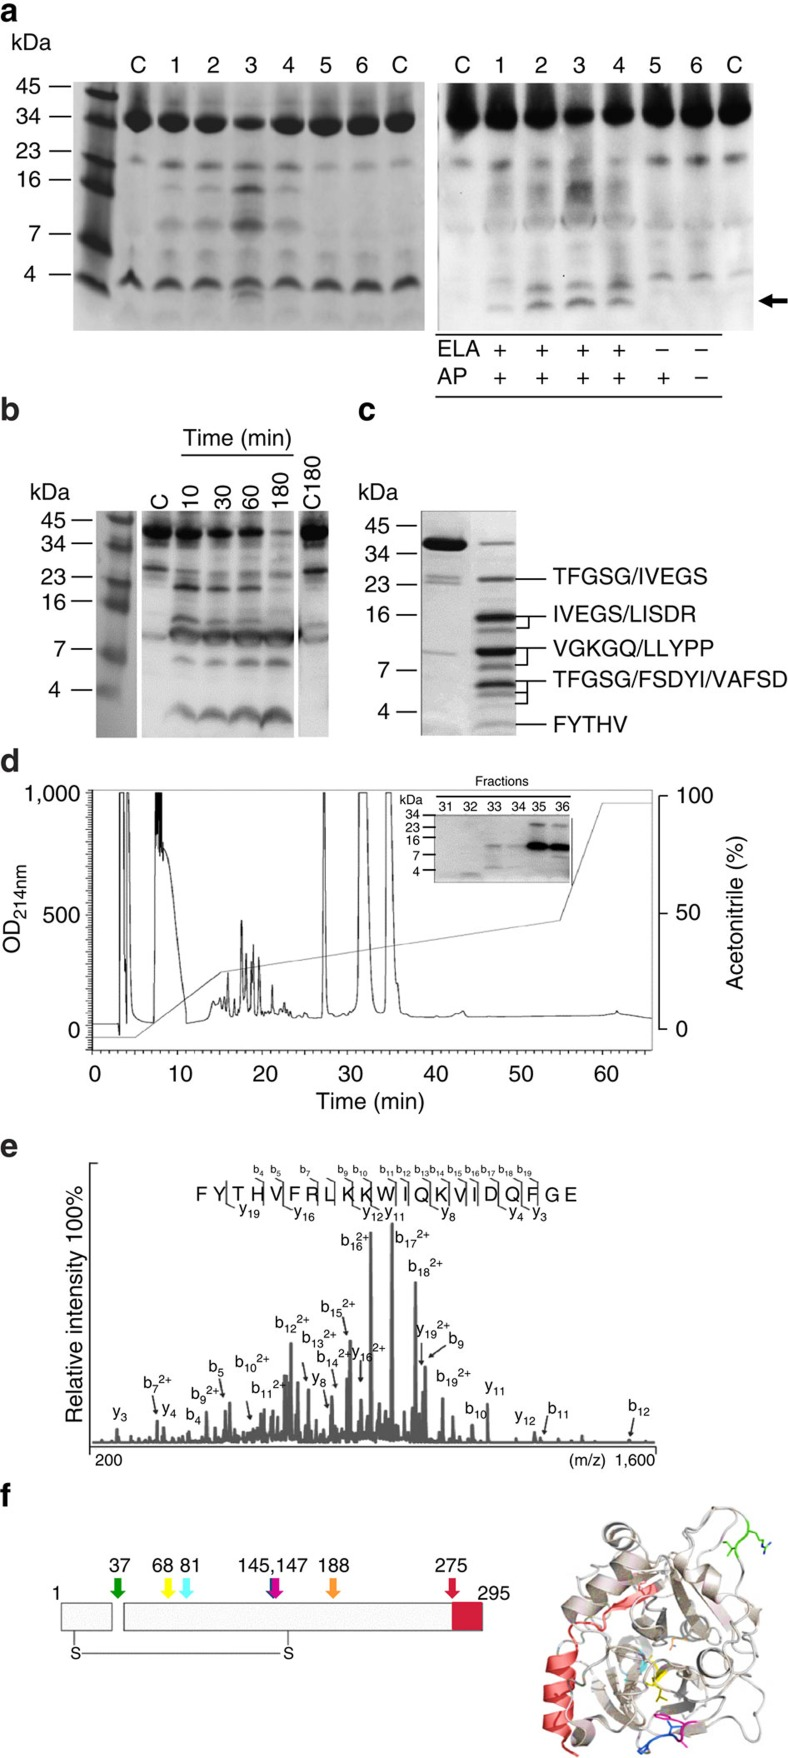 Isolation of the C-terminal-derived thrombin peptide FYT21. ( a ) Human <t>α-thrombin</t> was digested with CM from several protease producing (1:PAO1, 2–4: clinical isolates) and non-producing (5: PAOB1; 6: clinical isolate) strains for 1 h at 37 °C and analysed by SDS–PAGE (left) and western blotting (right). Thrombin alone was used as a control (c). The arrow indicates peptides of similar molecular mass as the endogenous HVF18, which are only formed in the presence of CM of elastase producing strains. ( b ) Thrombin was digested with purified P. aeruginosa elastase for various periods of time and analysed using western blotting. Thrombin alone was used as a control directly (C) or after 3 h incubation at 37 °C (C180). ( c ) Thrombin fragments obtained after 1 h digestion, followed by separation by SDS–PAGE, were subjected to N-terminal sequencing. ( d ) HPLC profile of digested thrombin. The insert shows the fractions containing C-terminal epitopes of thrombin. The full sequence of the peptide in fraction 32 was obtained using Orbitrap analysis ( e ). ( f ) A 2D (showing the inter-chain disulphide bond) and a 3D model of thrombin depicting all cleavage sites of elastase. Each colour represents one cleavage site. The C-terminal peptide FYT21 is depicted in red. Of note, the sequences TFGSG and IVEGS represent the N termini of the light and heavy chains, respectively.